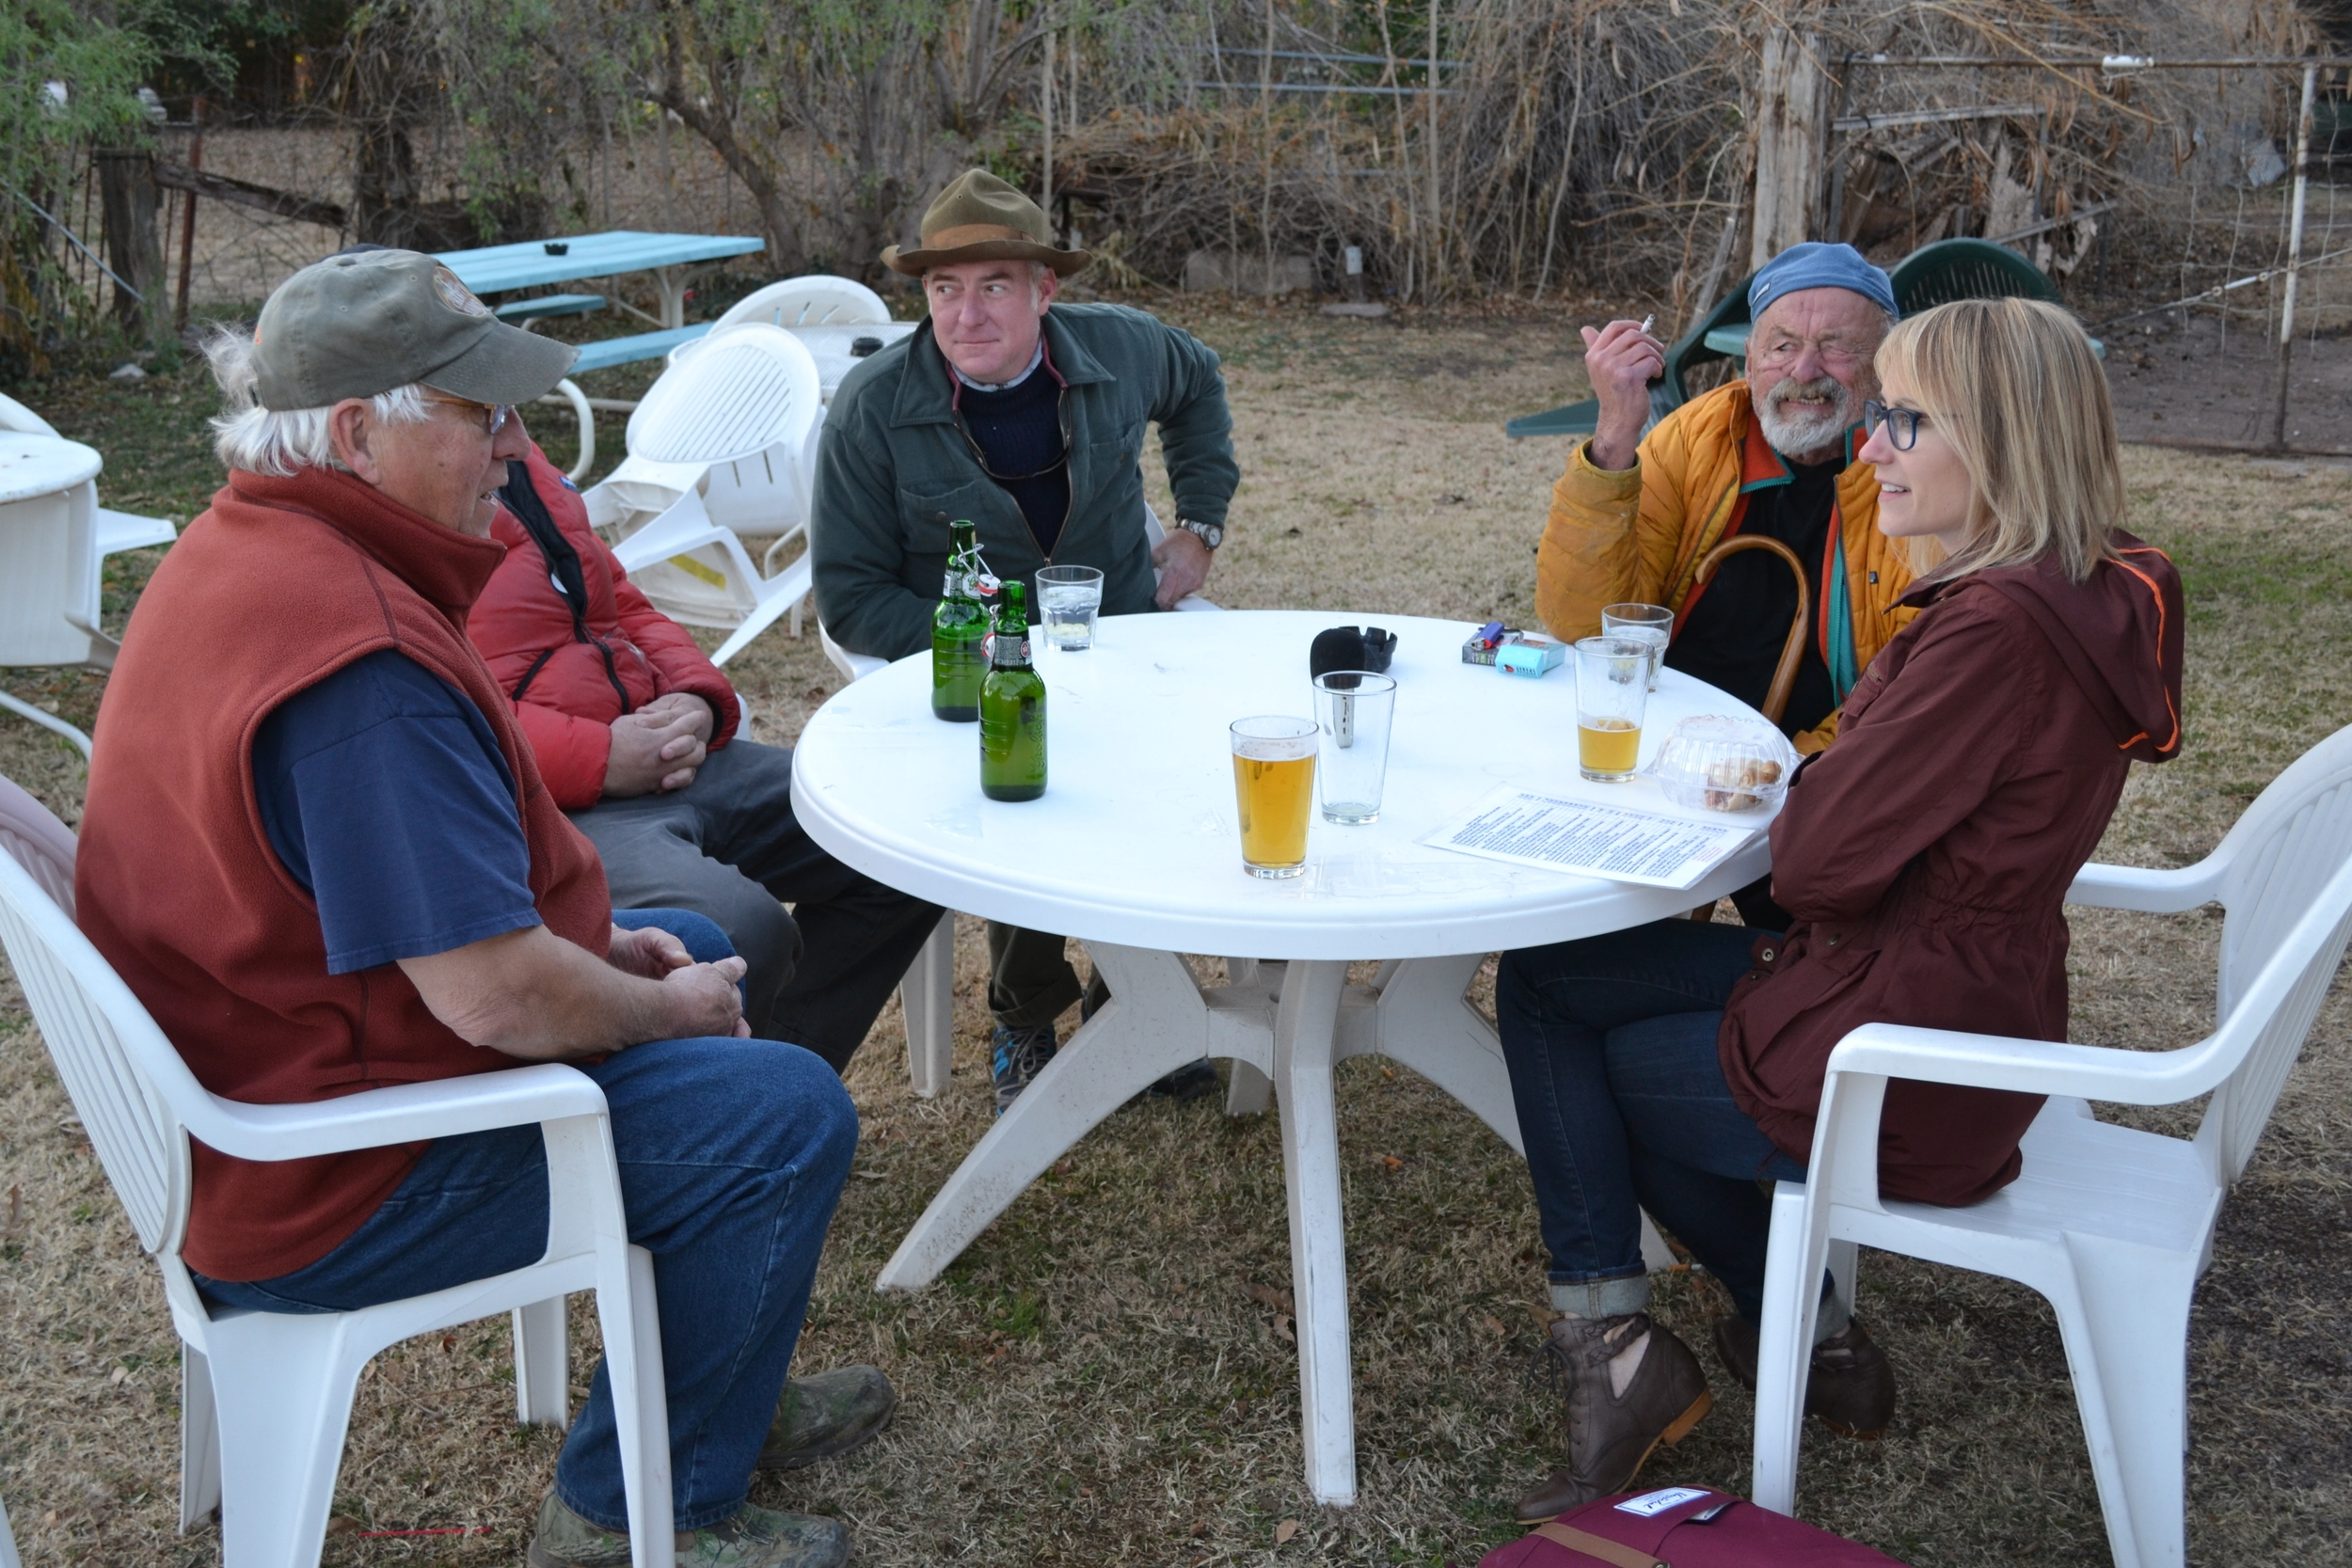 Mel holds her own at a table with novelist/poet Jim Harrison (second from the right)and a group of hunters at the Wagon Wheel Saloon in Patagonia, AZ.